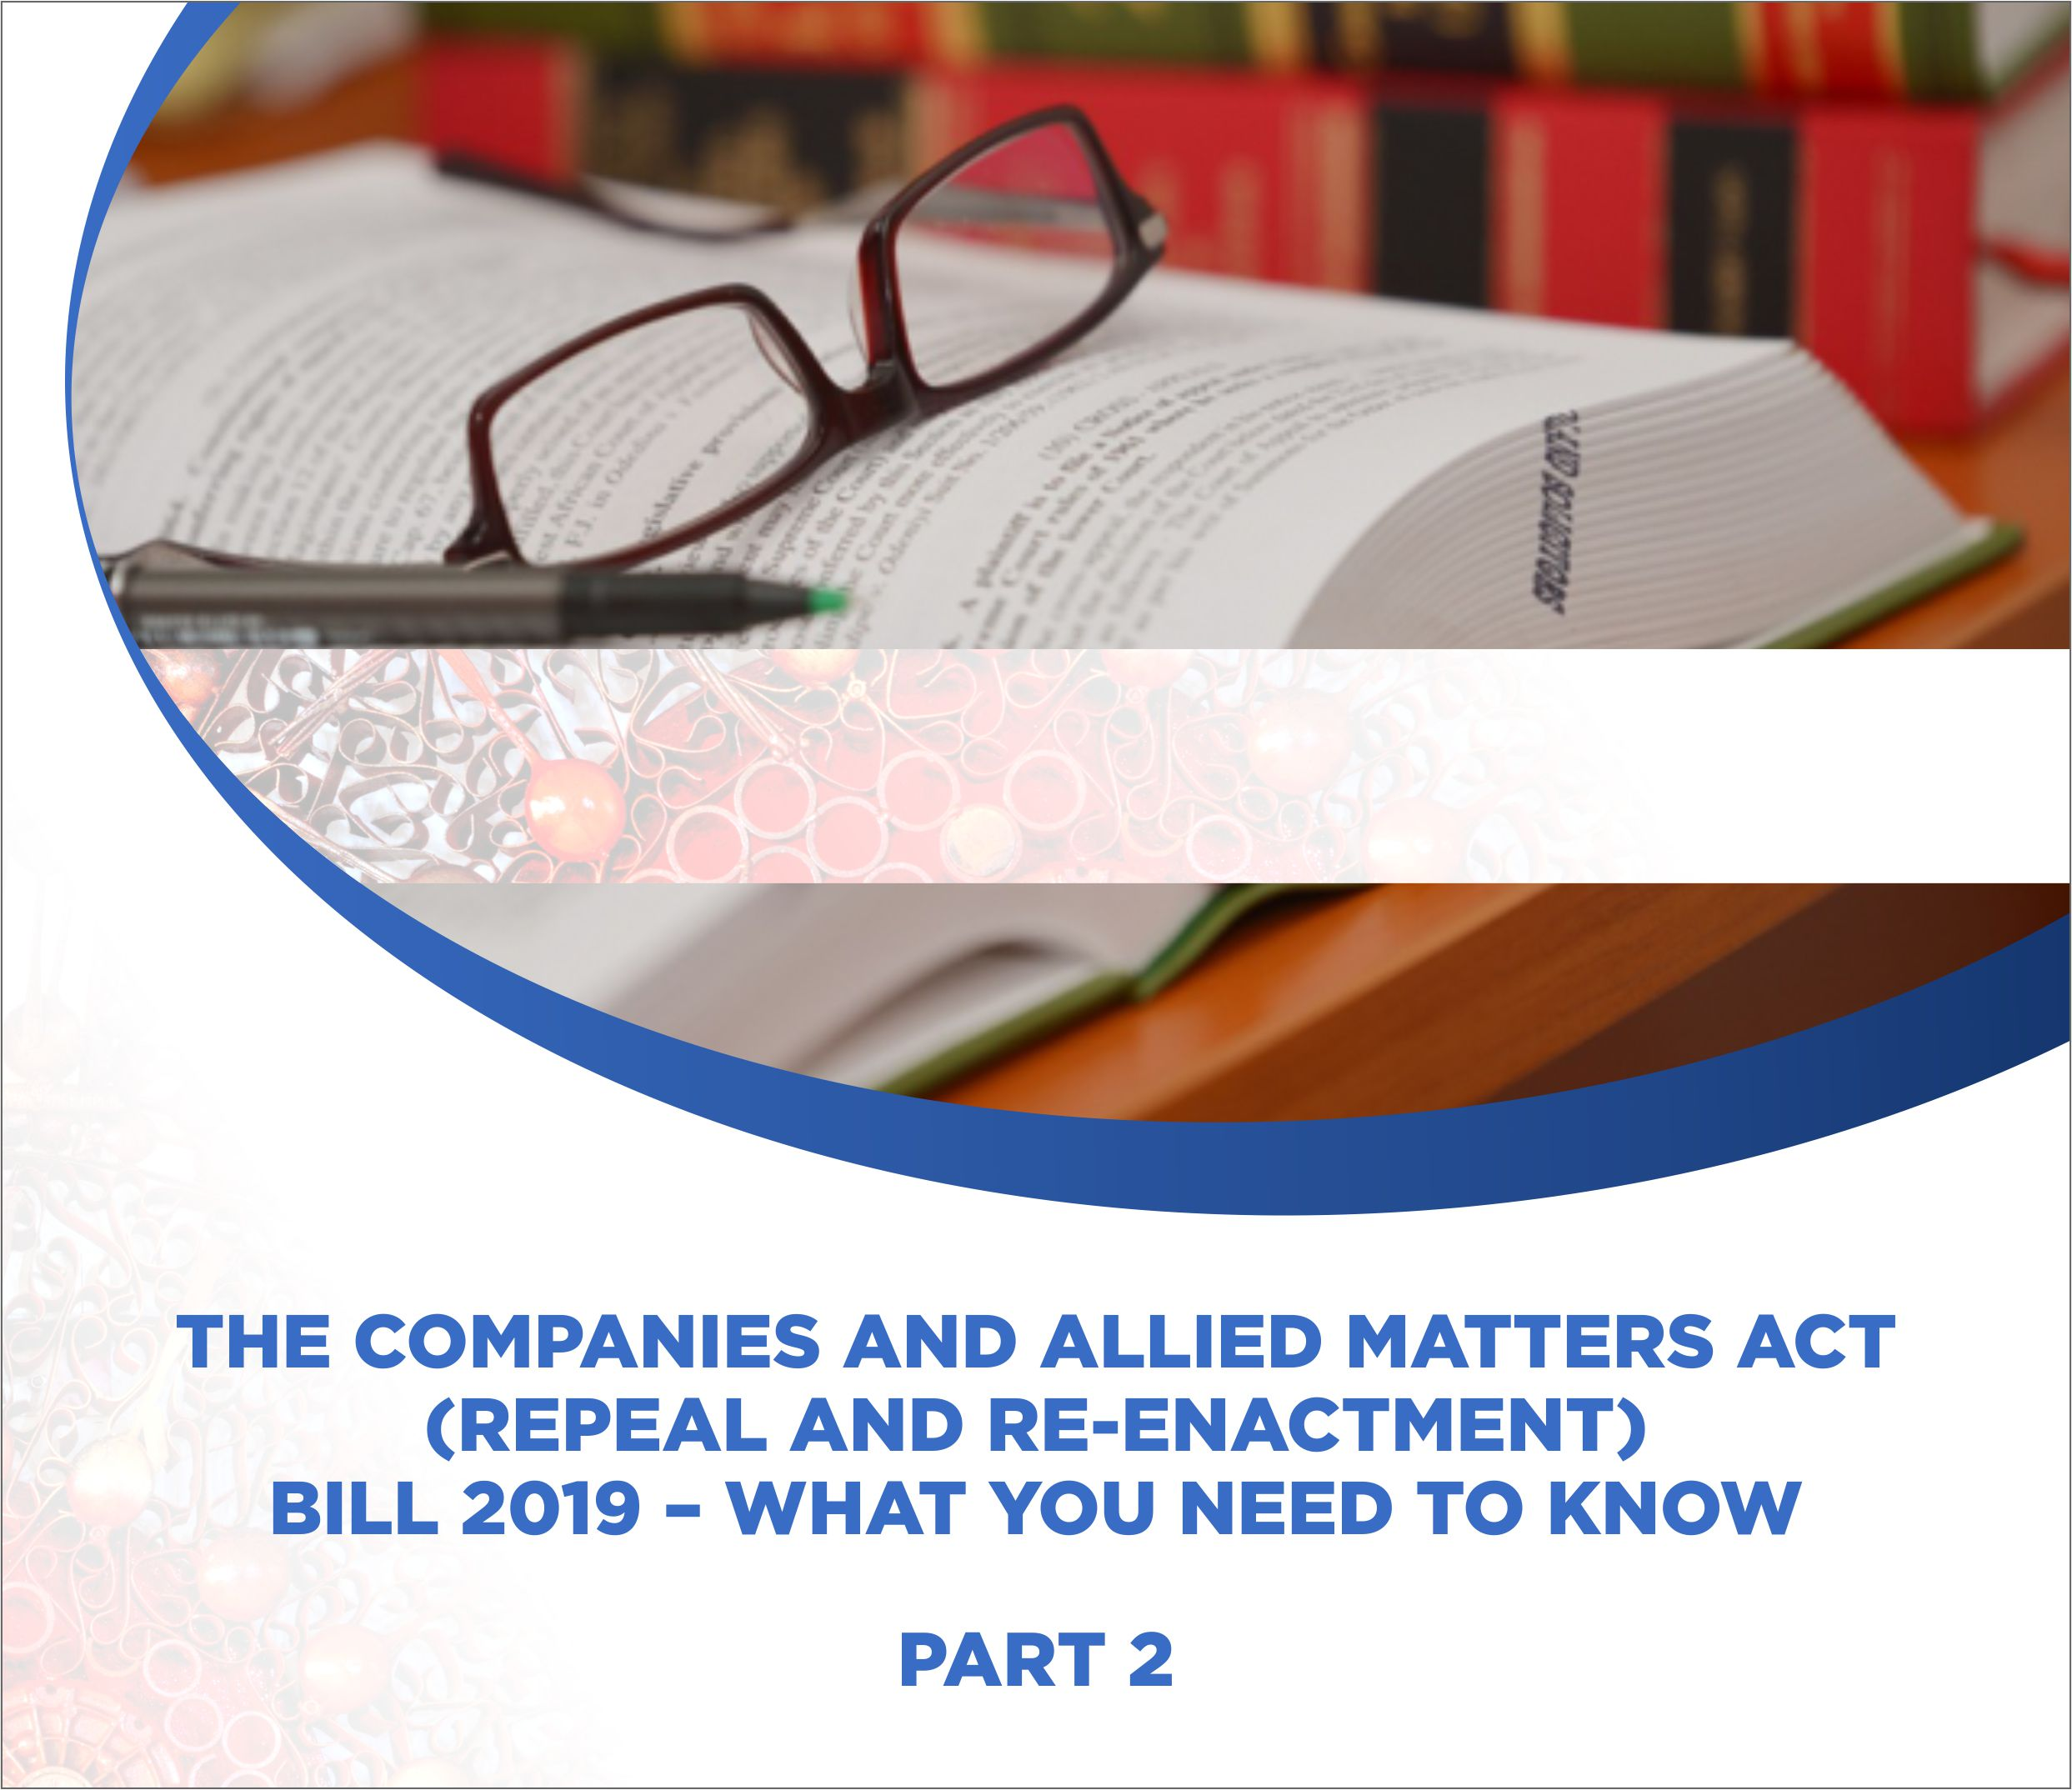 THE COMPANIES AND ALLIED MATTERS ACT (REPEAL AND RE-ENACTMENT) BILL 2019 – WHAT YOU NEED TO KNOW - PART 2